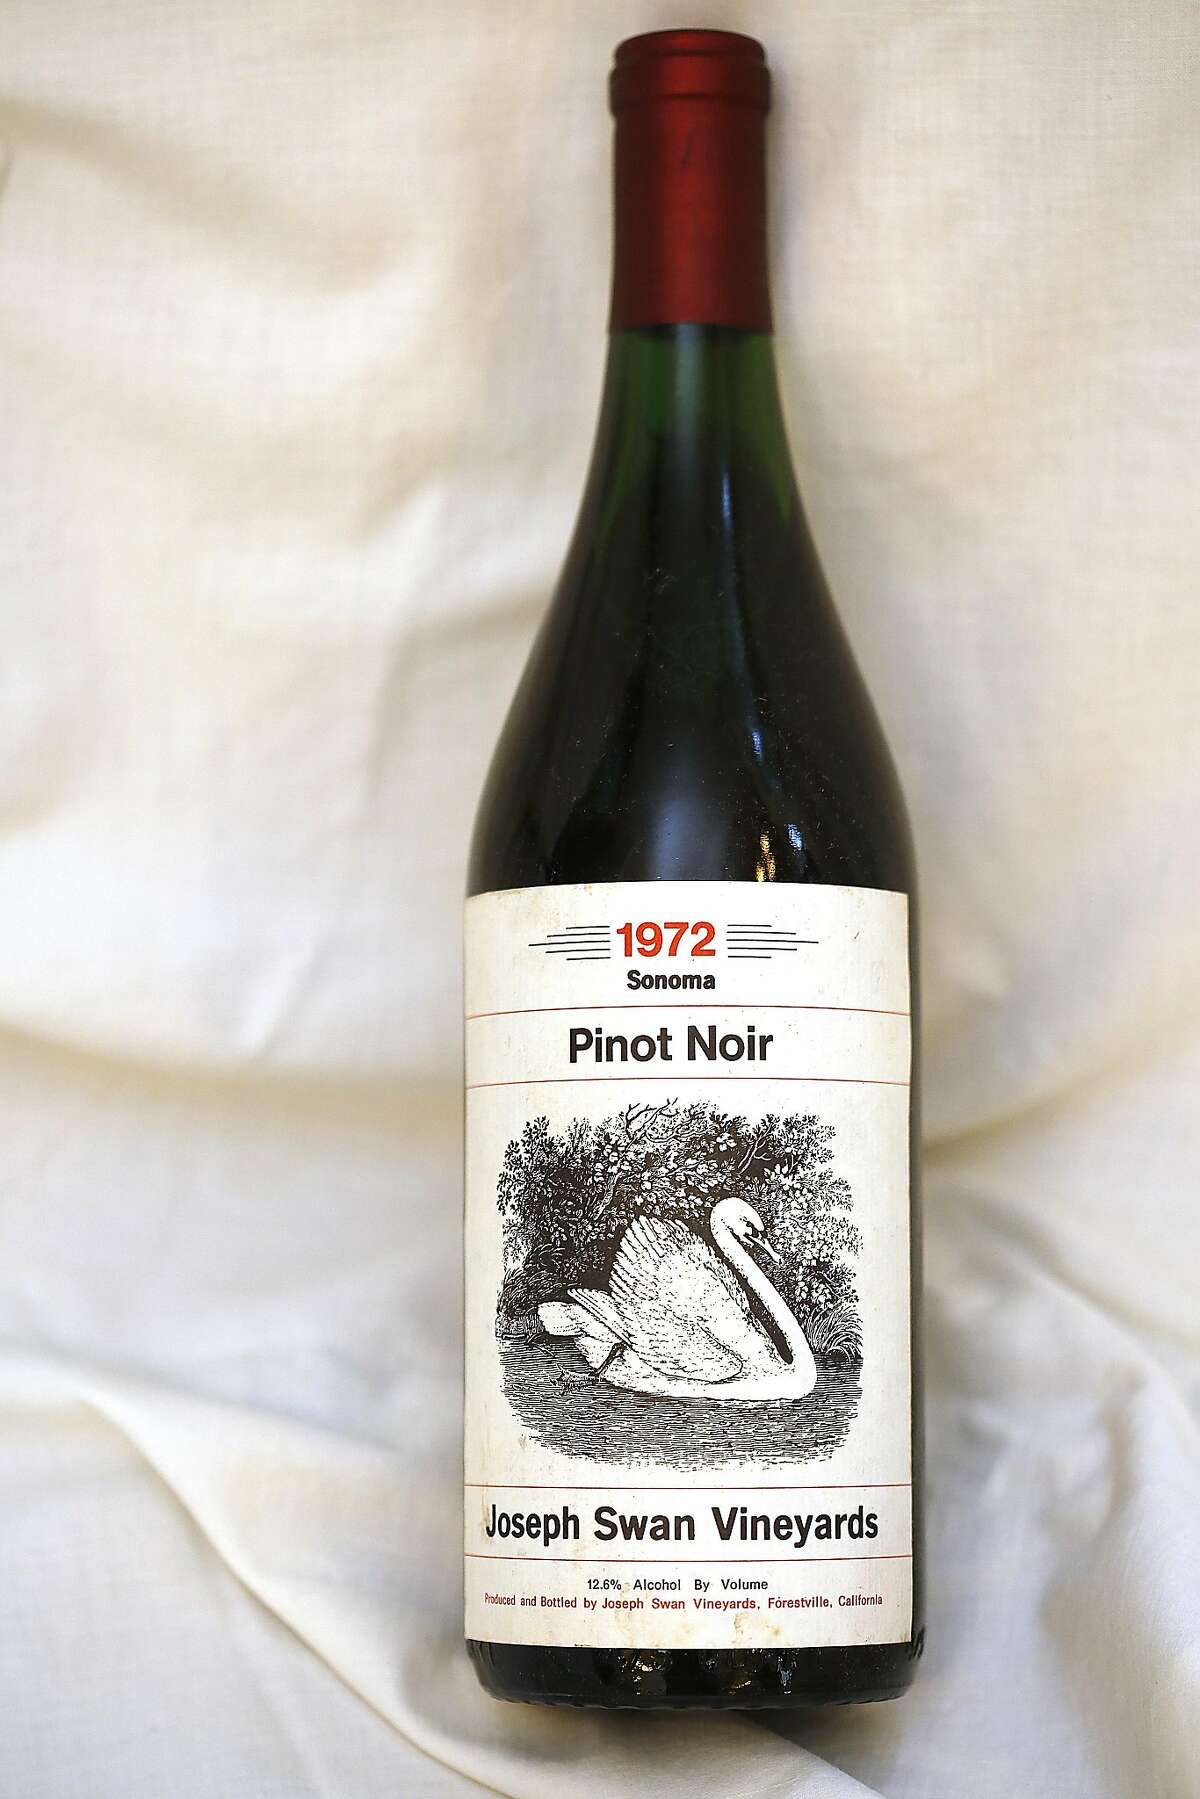 Joseph Swan Vineyards 1972 Pinot Noir on Monday, November 11, 2016, at home in Petaluma, Calif.